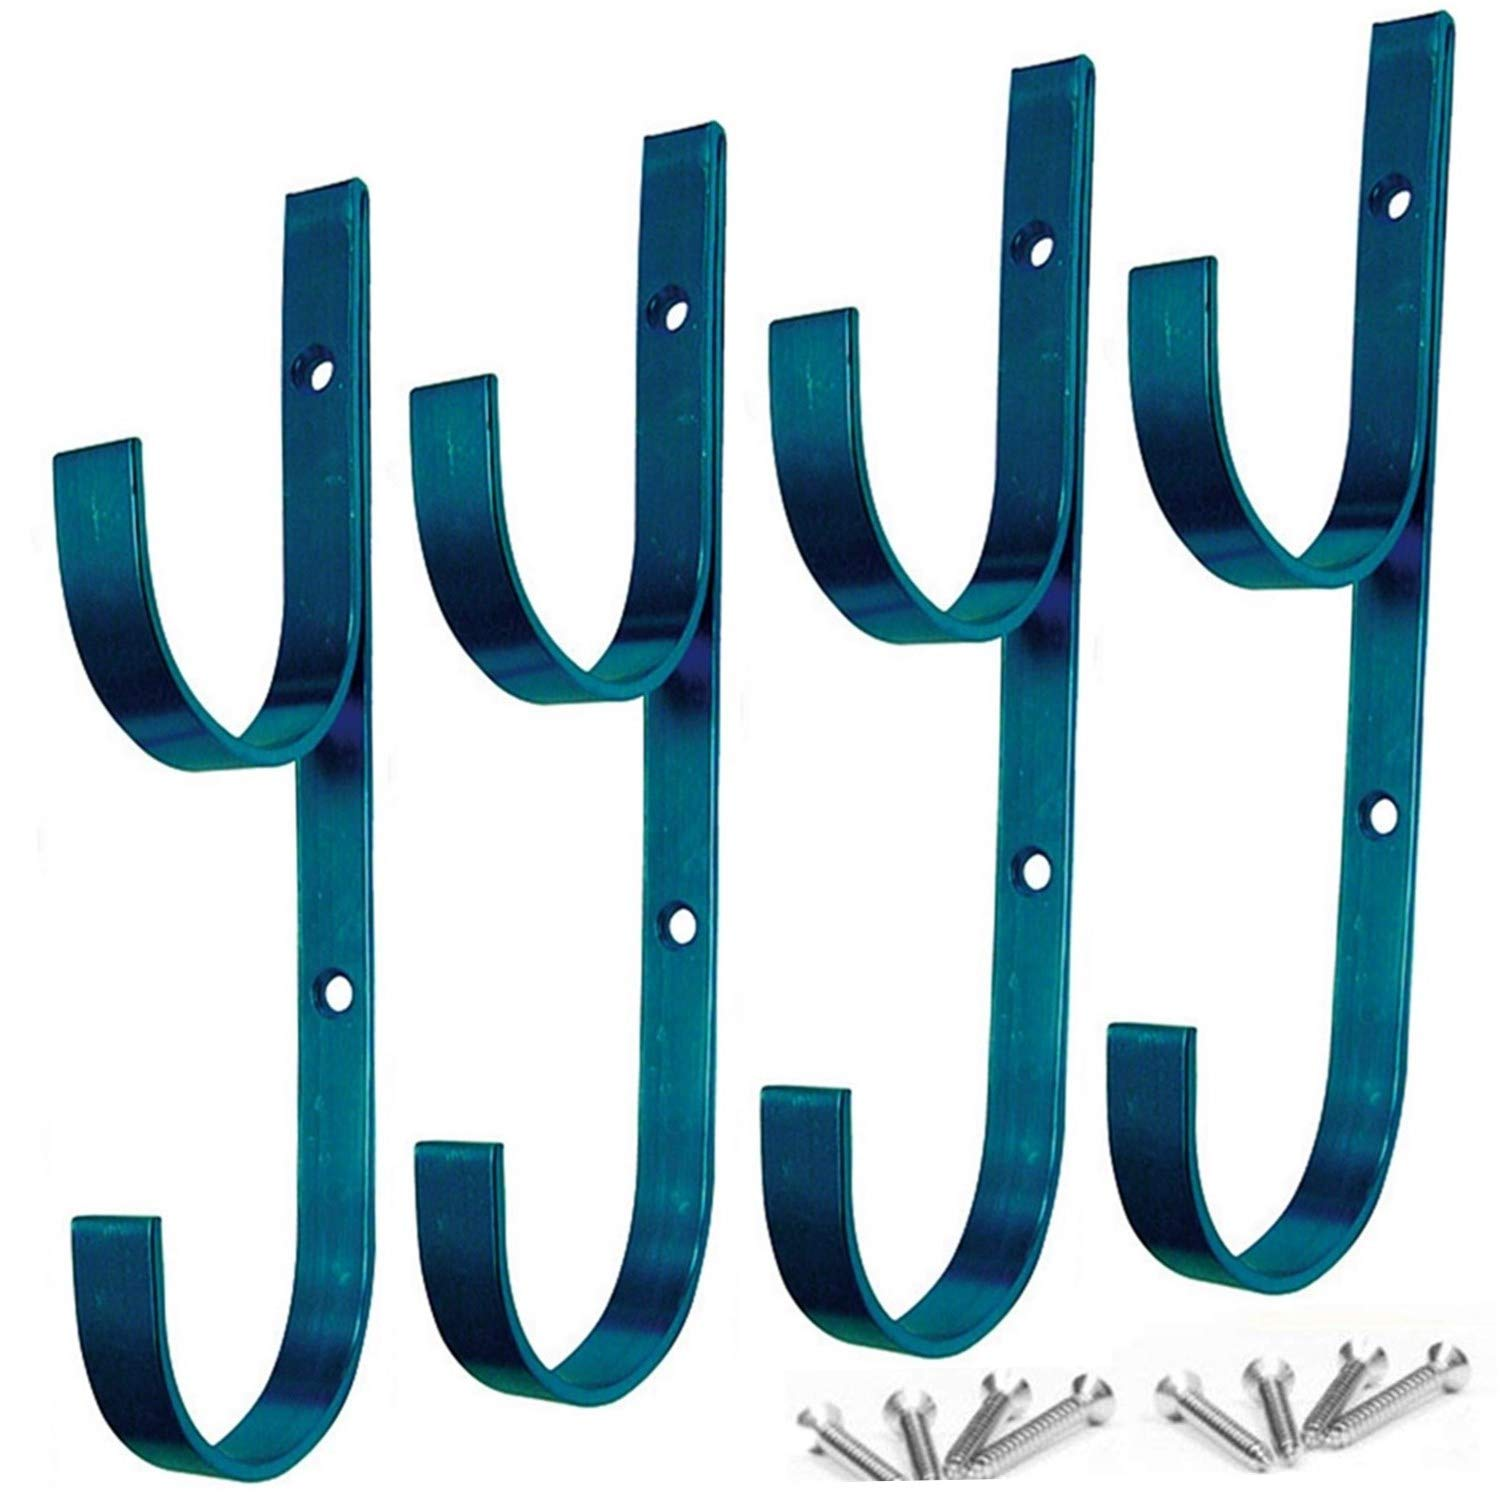 MENG ZHI AO 4 PCS Set Pool Pole Hangers Heavy Duty Blue Aluminium Holder Hooks with Screws Perfect Hooks for Swimming Pool,Telescopic Poles,Skimmers,Nets Brushes,Vacuum Hose,Garden Equipment Etc